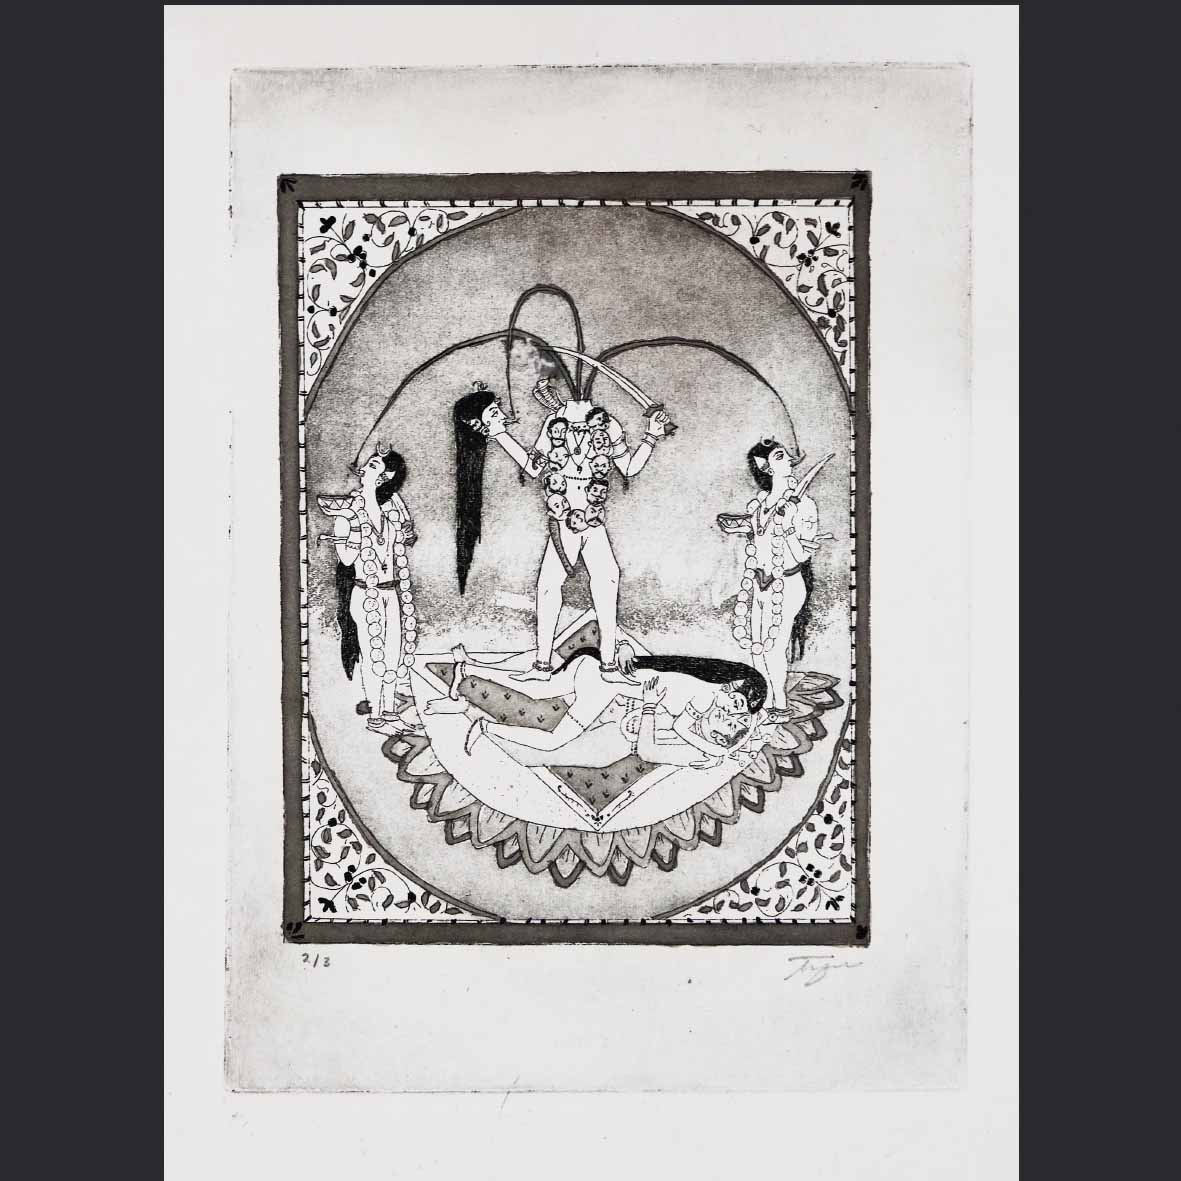 Tyra Naidoo An ode to desi woman, an ode to me, (An ode to the Tantric Devi Series, Guler workshops 1800's) 2018 Etching, aquitint and indian ink on Rosapina Fabriano (edition of 3) 36 x 28 cm - framed (1/3) 35 x 24.5 cm - unframed ( 2/3 & 3/3)